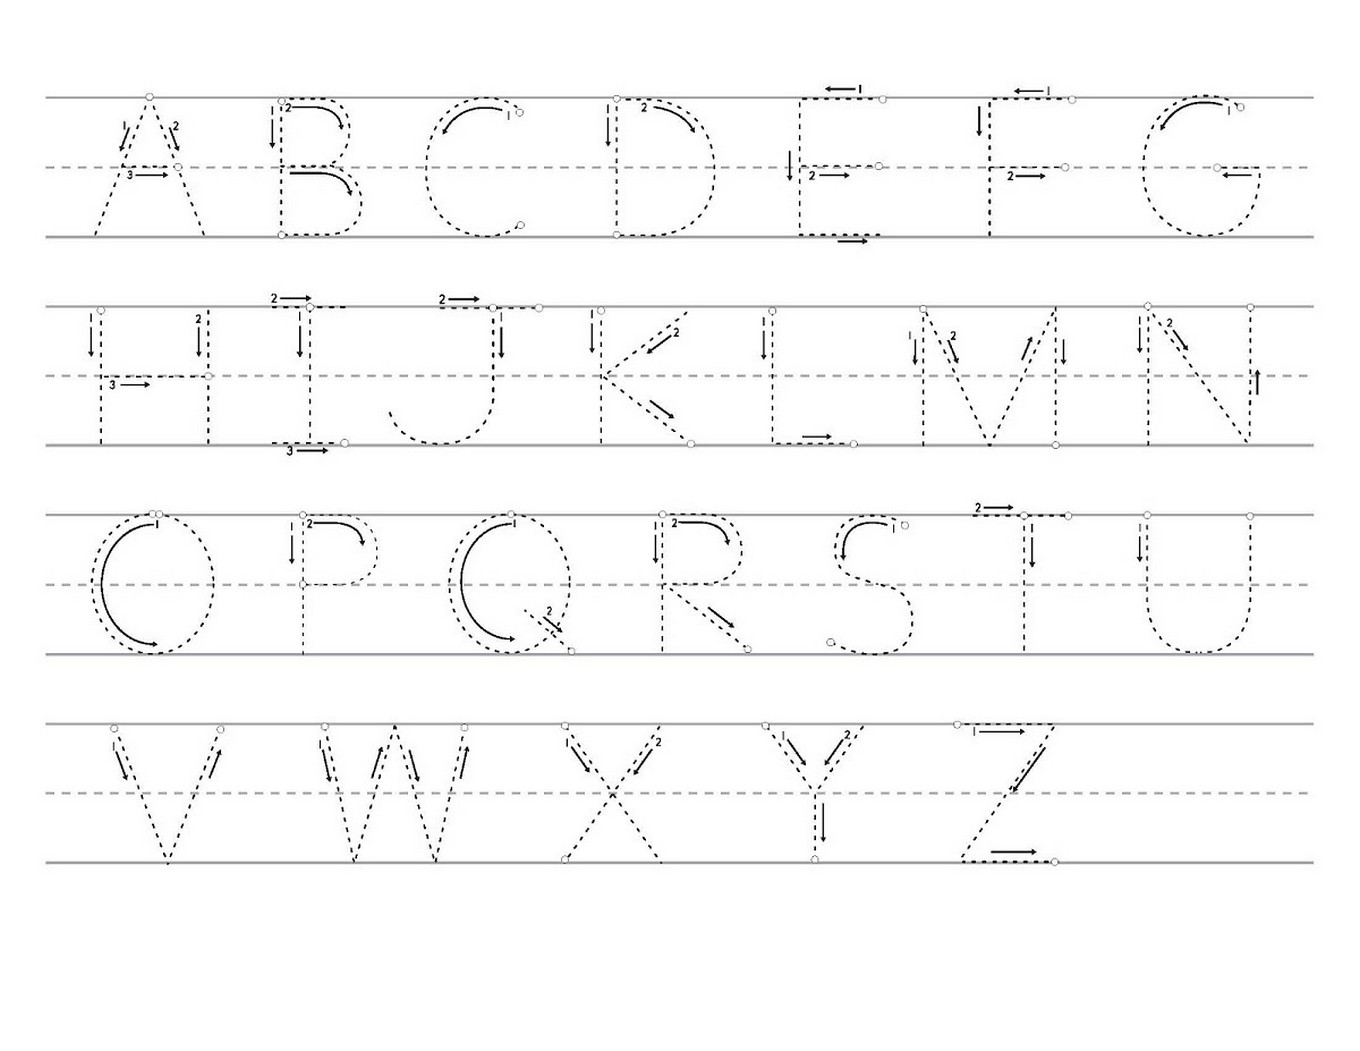 tracing letters a-z worksheets printable